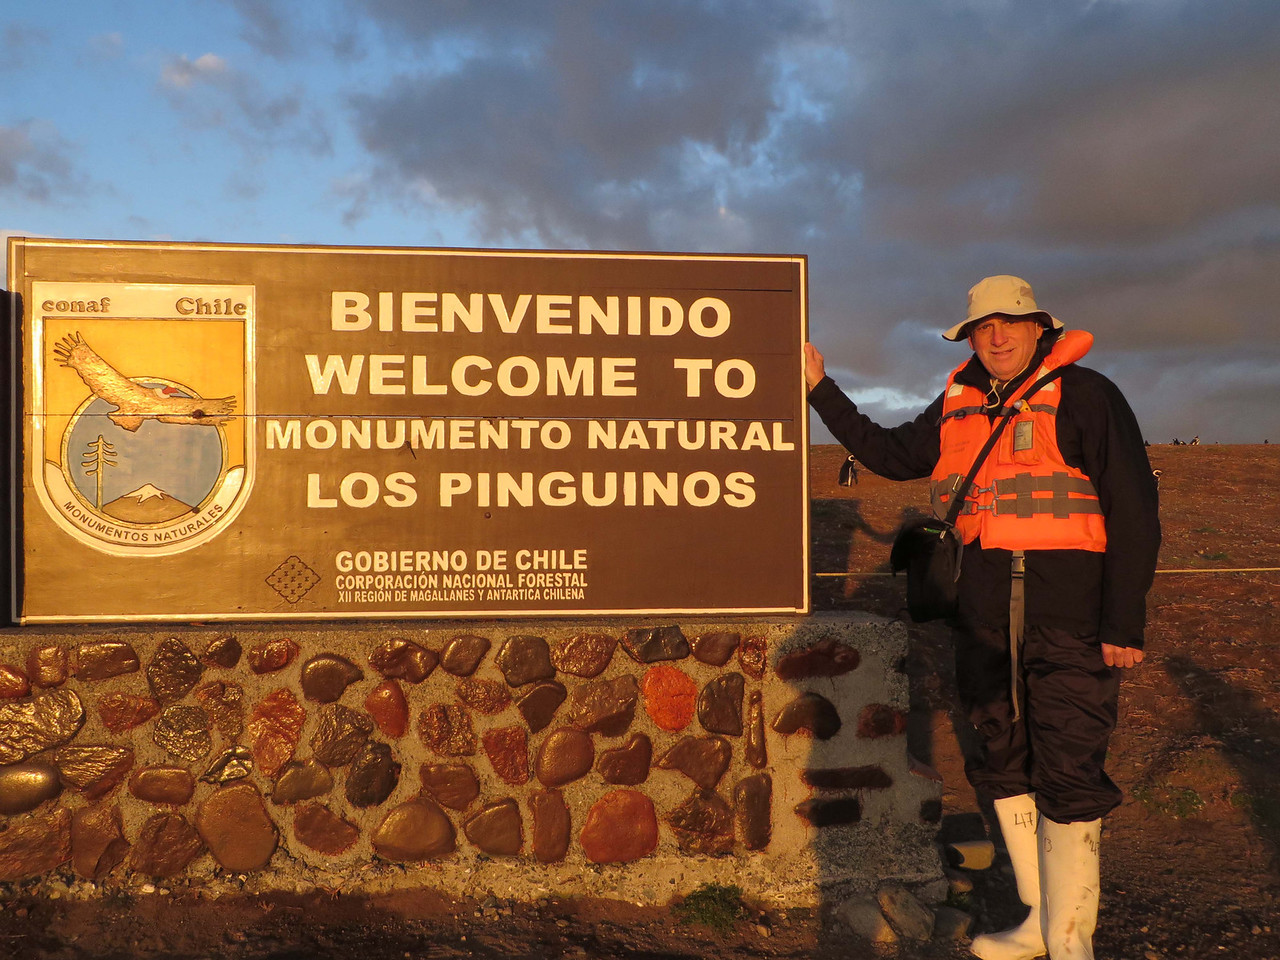 Magdalena Island. Home to 73,000 Magellenic Penguins